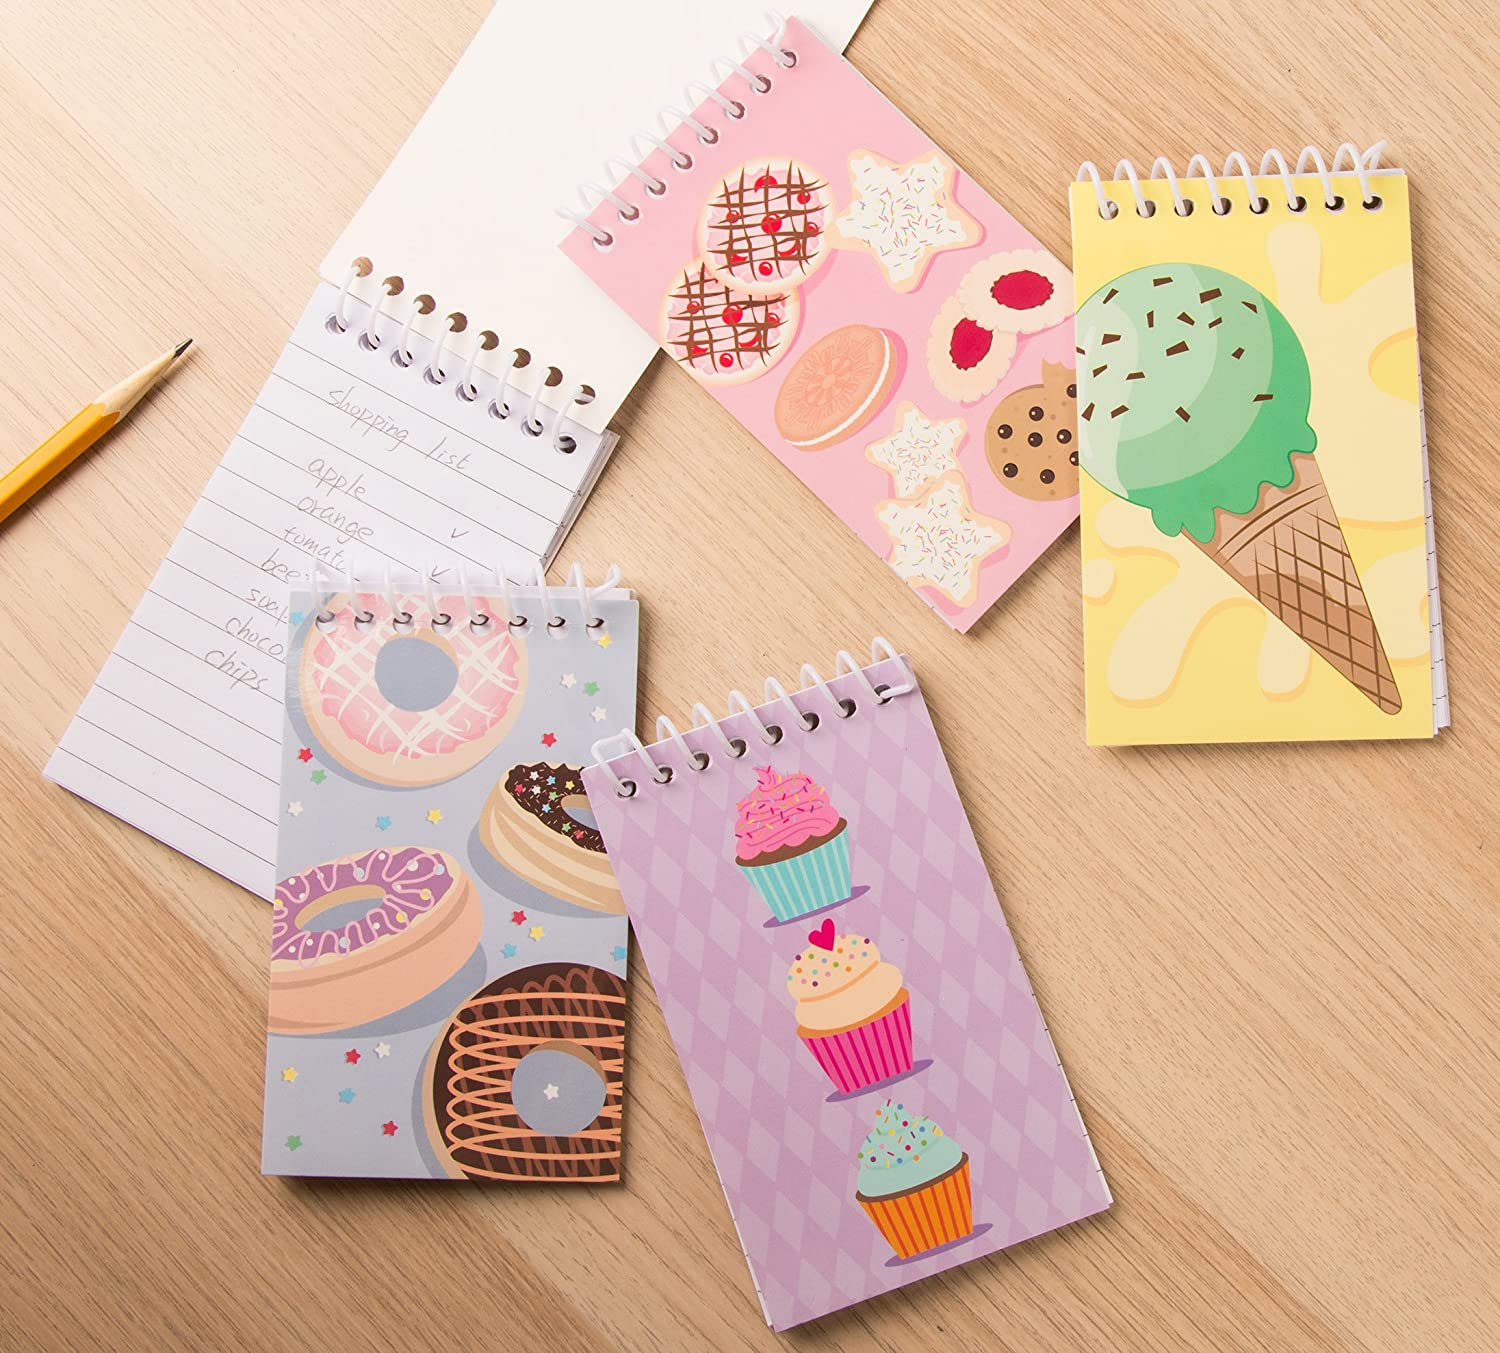 3 x 5 Inches, 24-Pack Spiral Notepads with Dessert Design